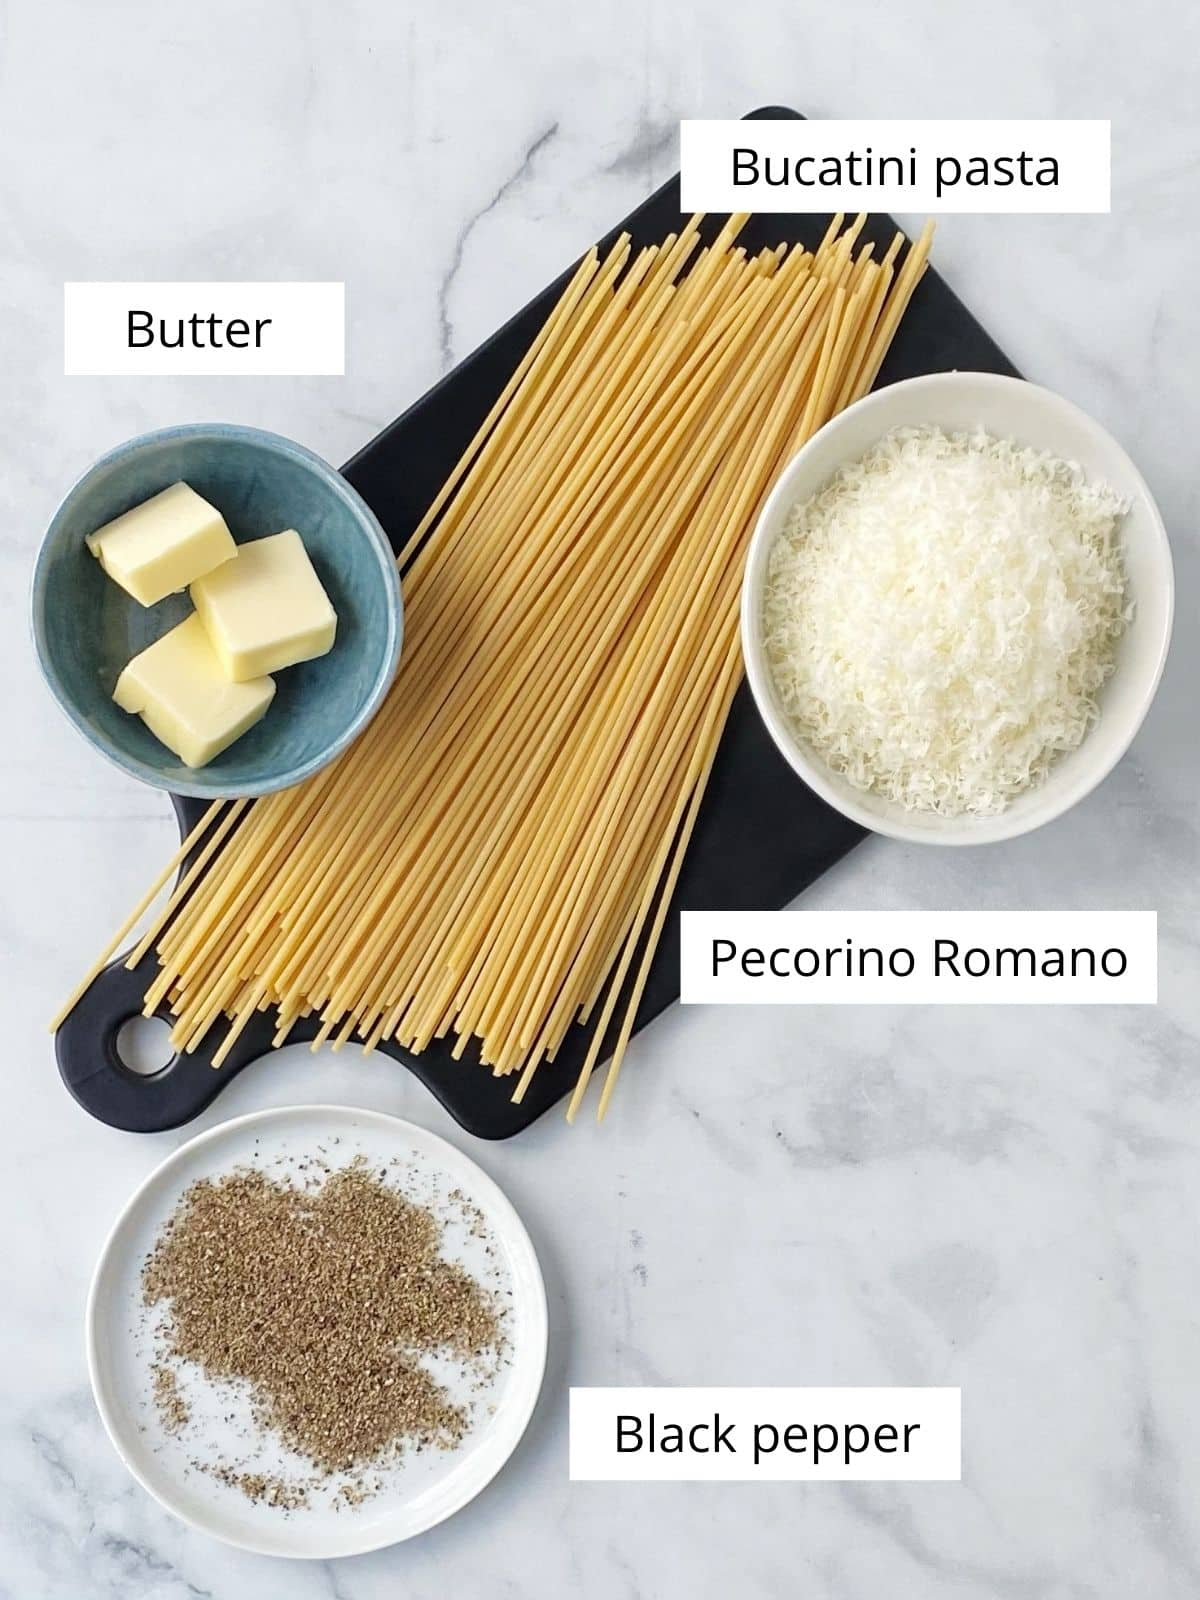 ingredients - pasta, black pepper, cheese, butter